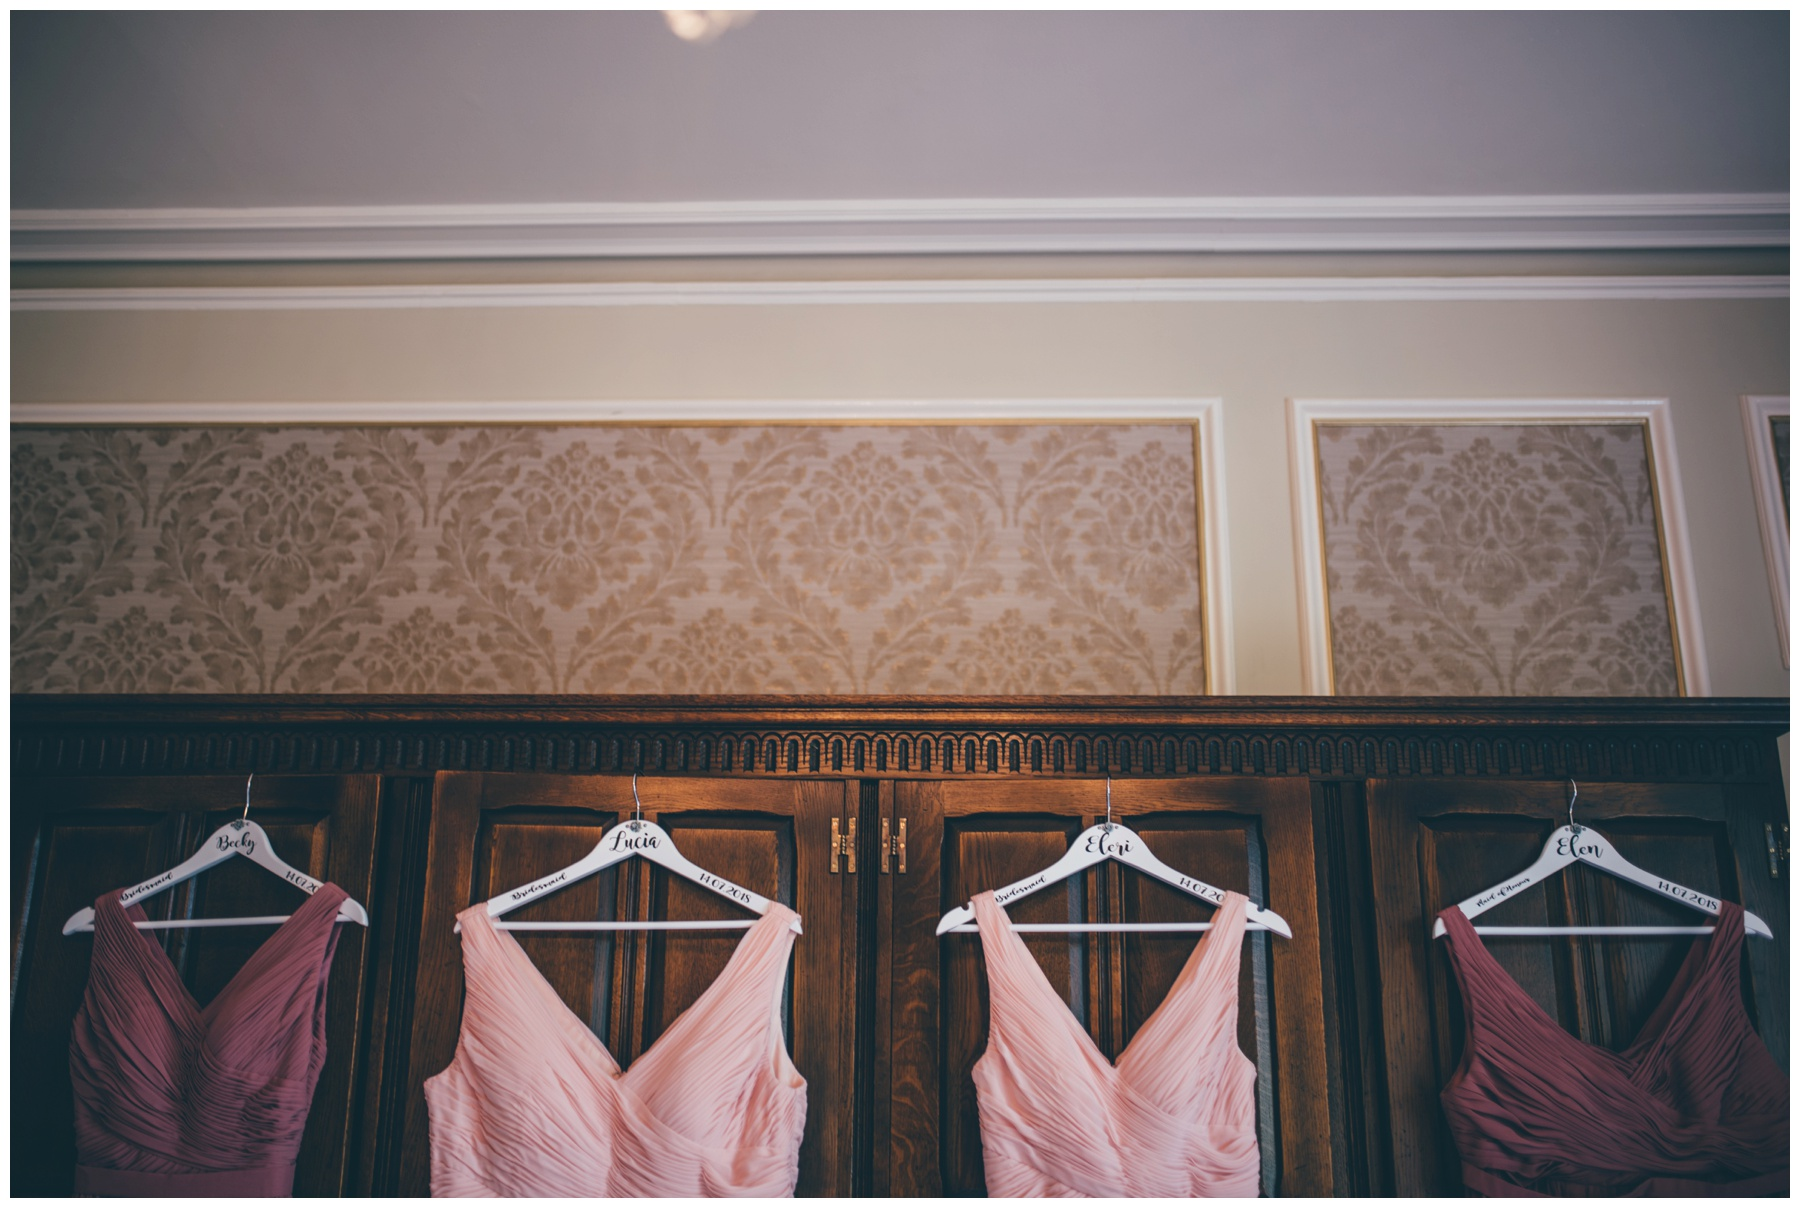 Bridesmaids dresses hung up in the bridal suite at Tilstone House in Cheshire.